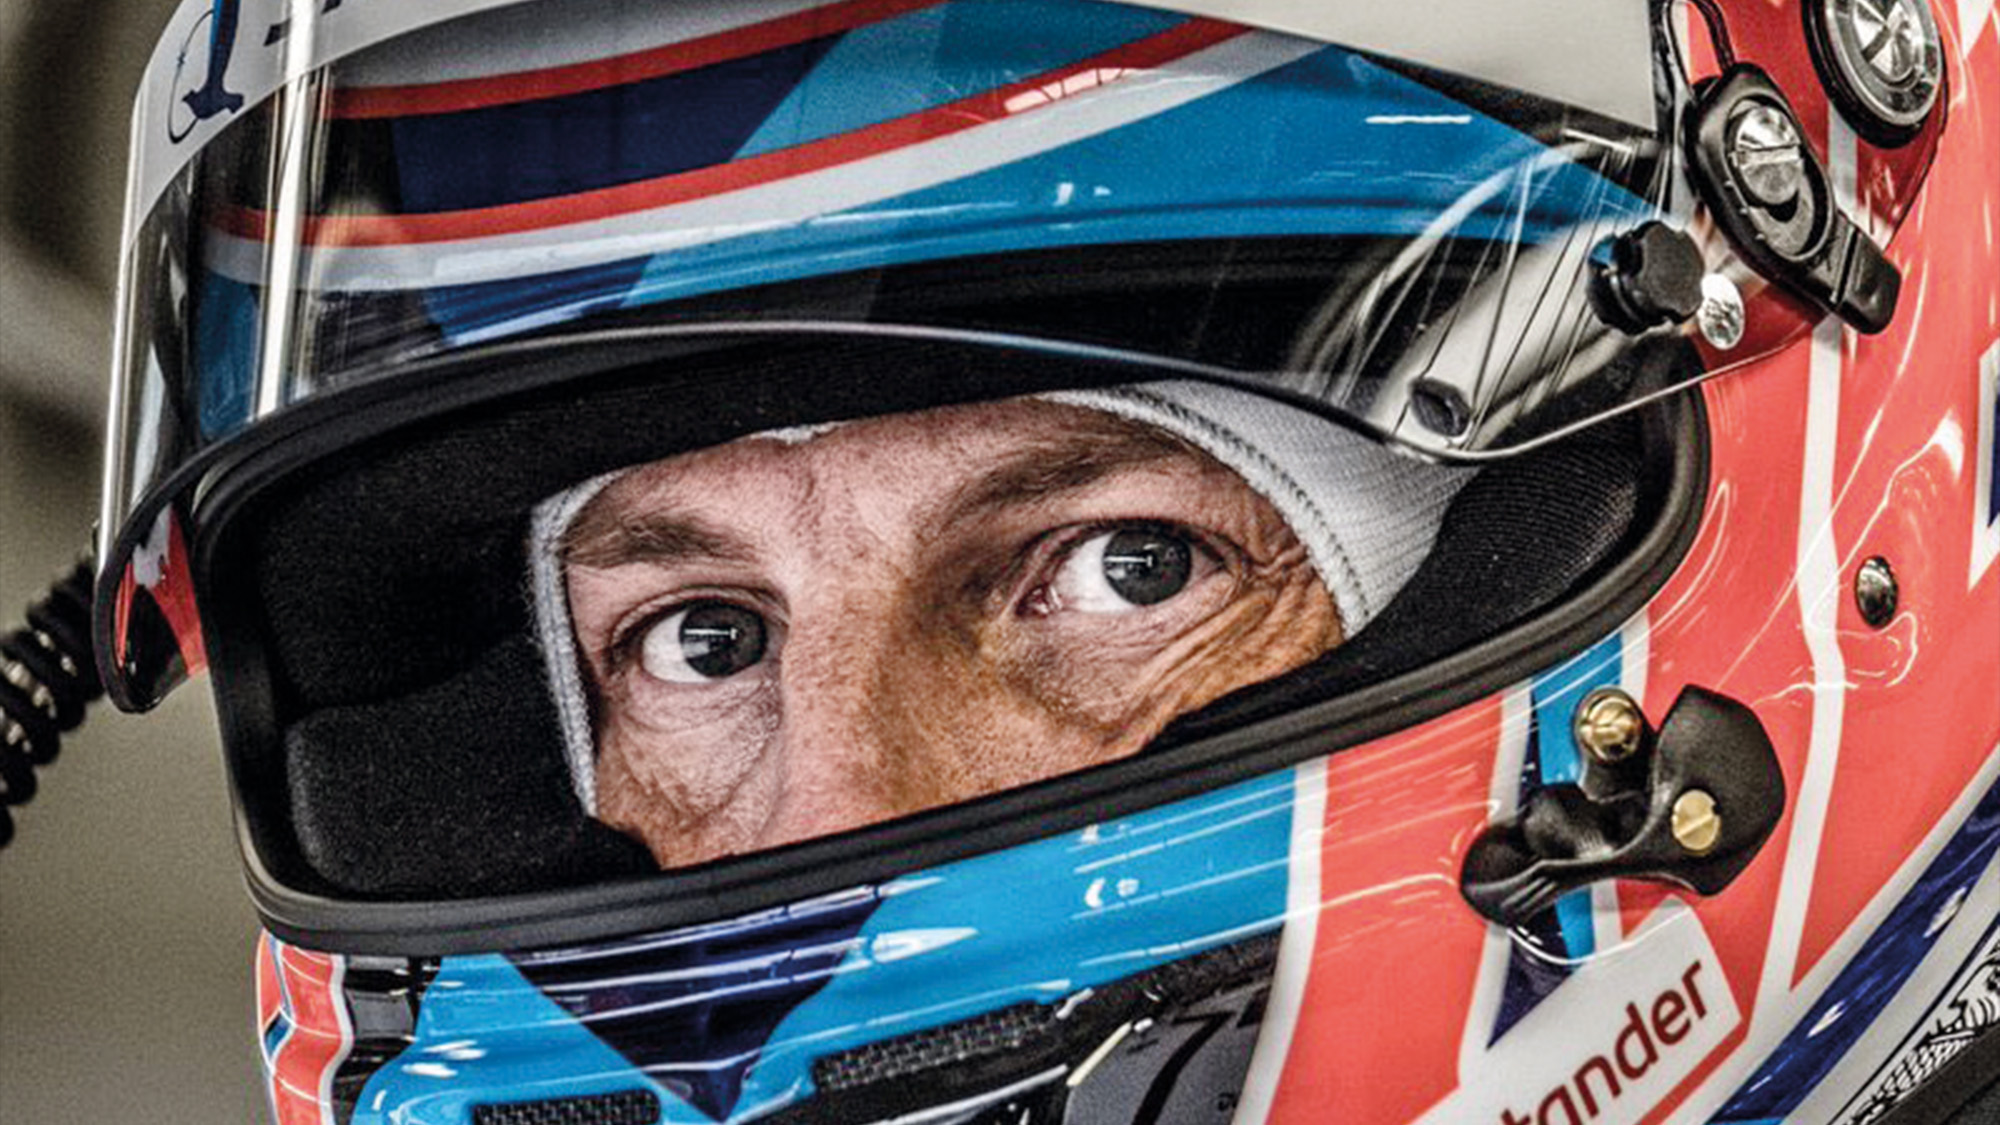 Jenson Button's eyes peer out from behind his helmet